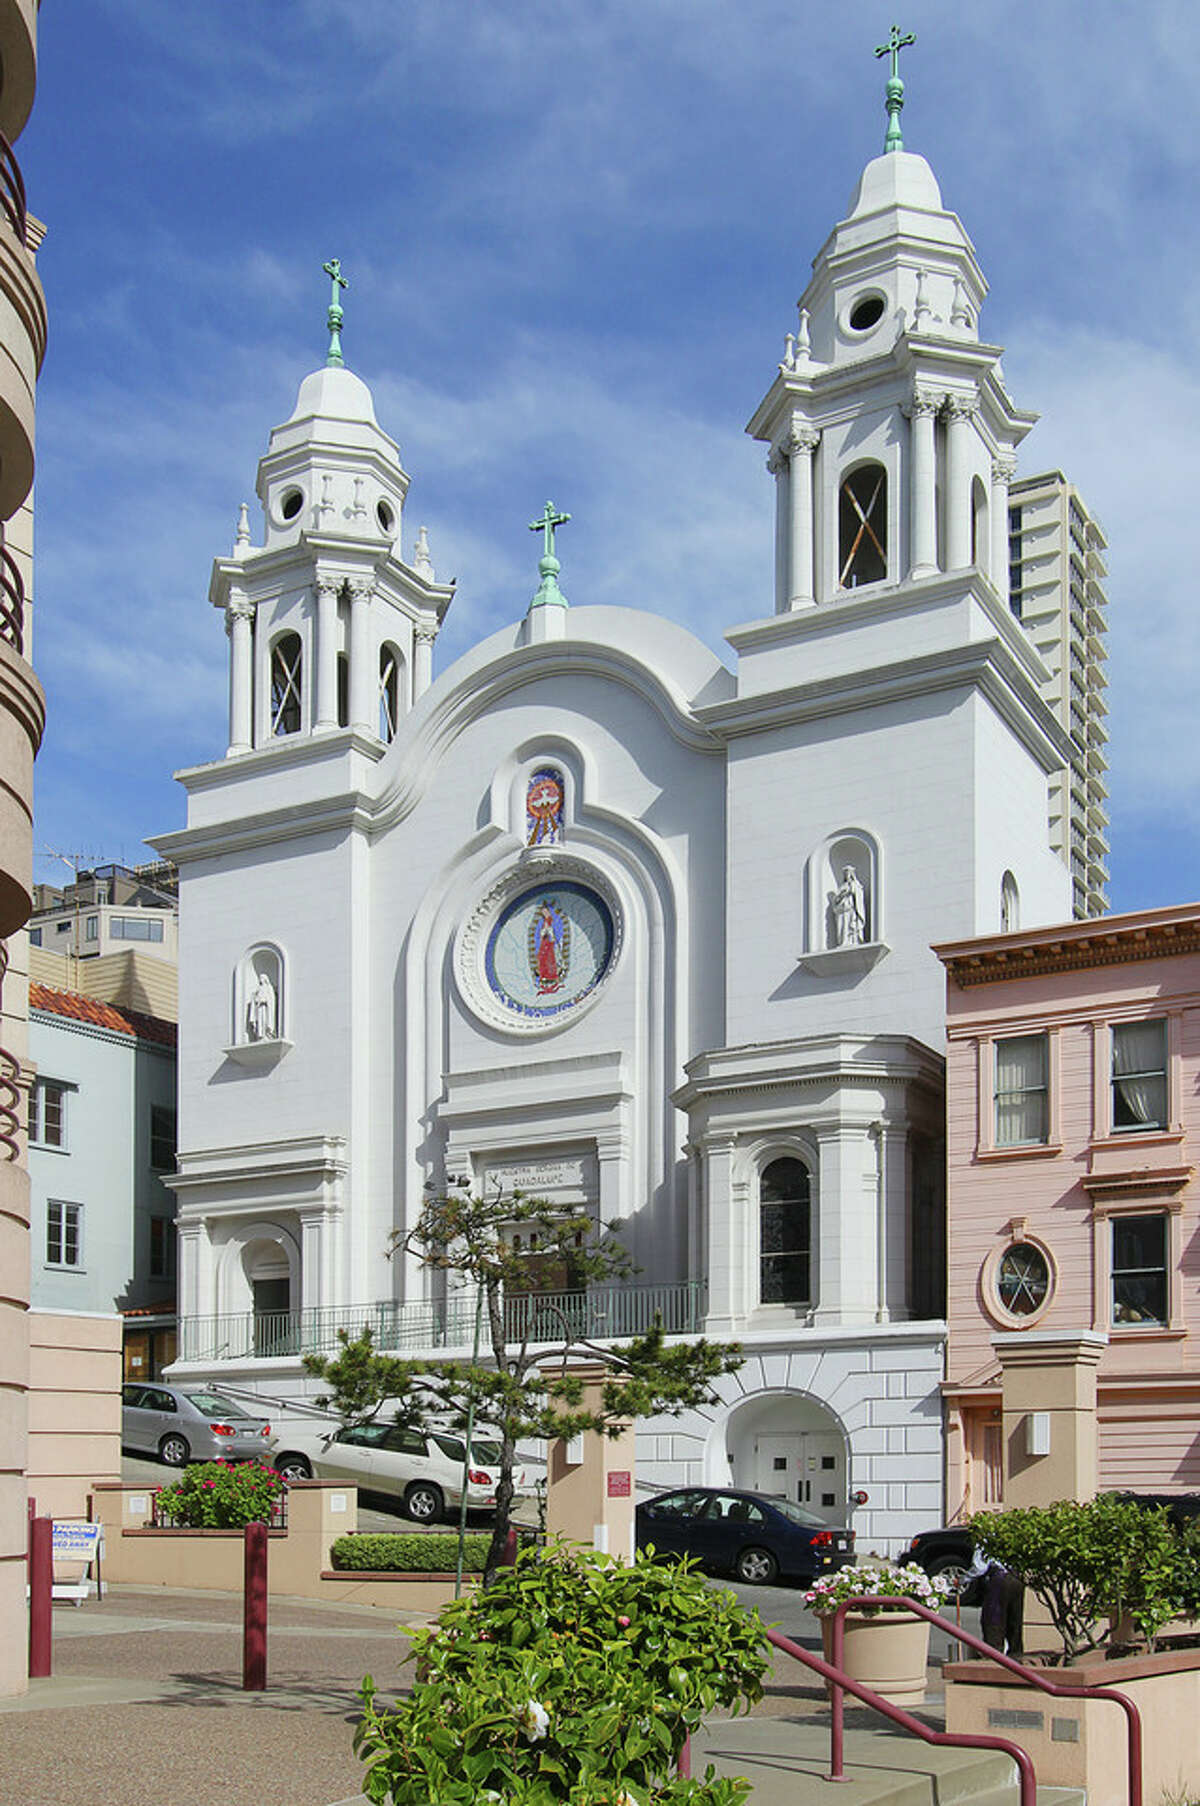 An ornate, stained glass-filled church in North Beach sold for $7 million in August 2016.